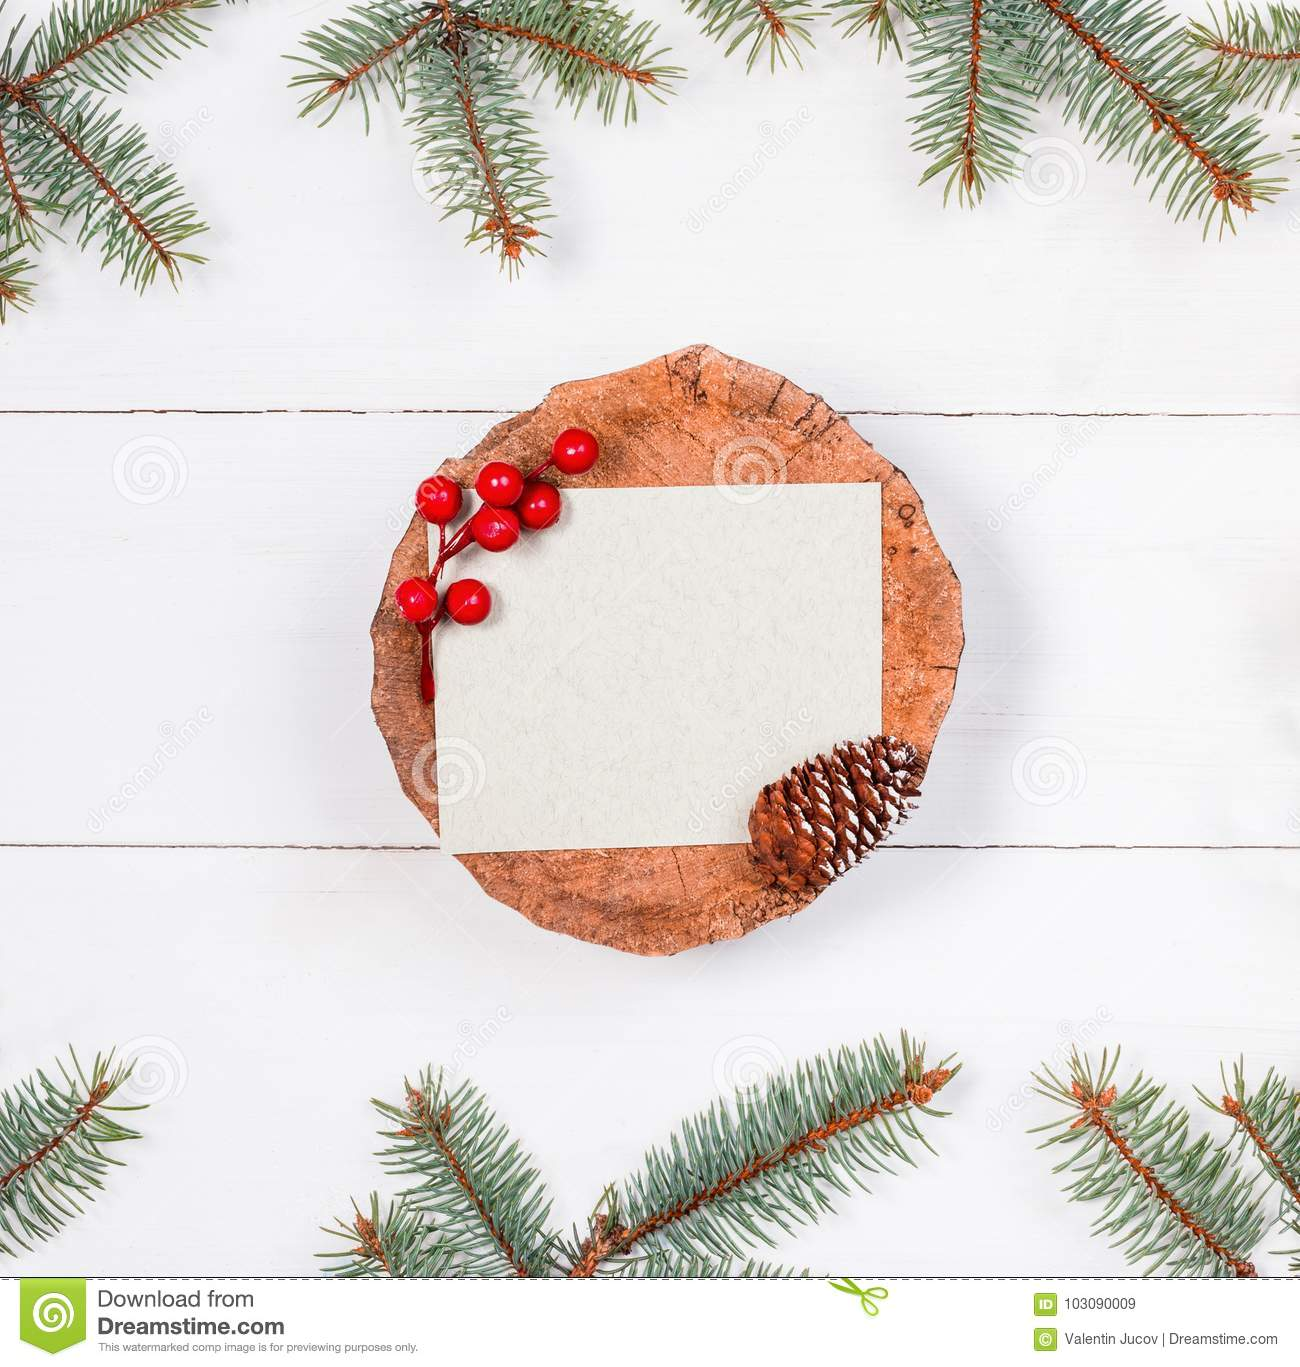 christmas letter for santa on stump on white wooden background with fir branches and decorations - Christmas Letter Decorations